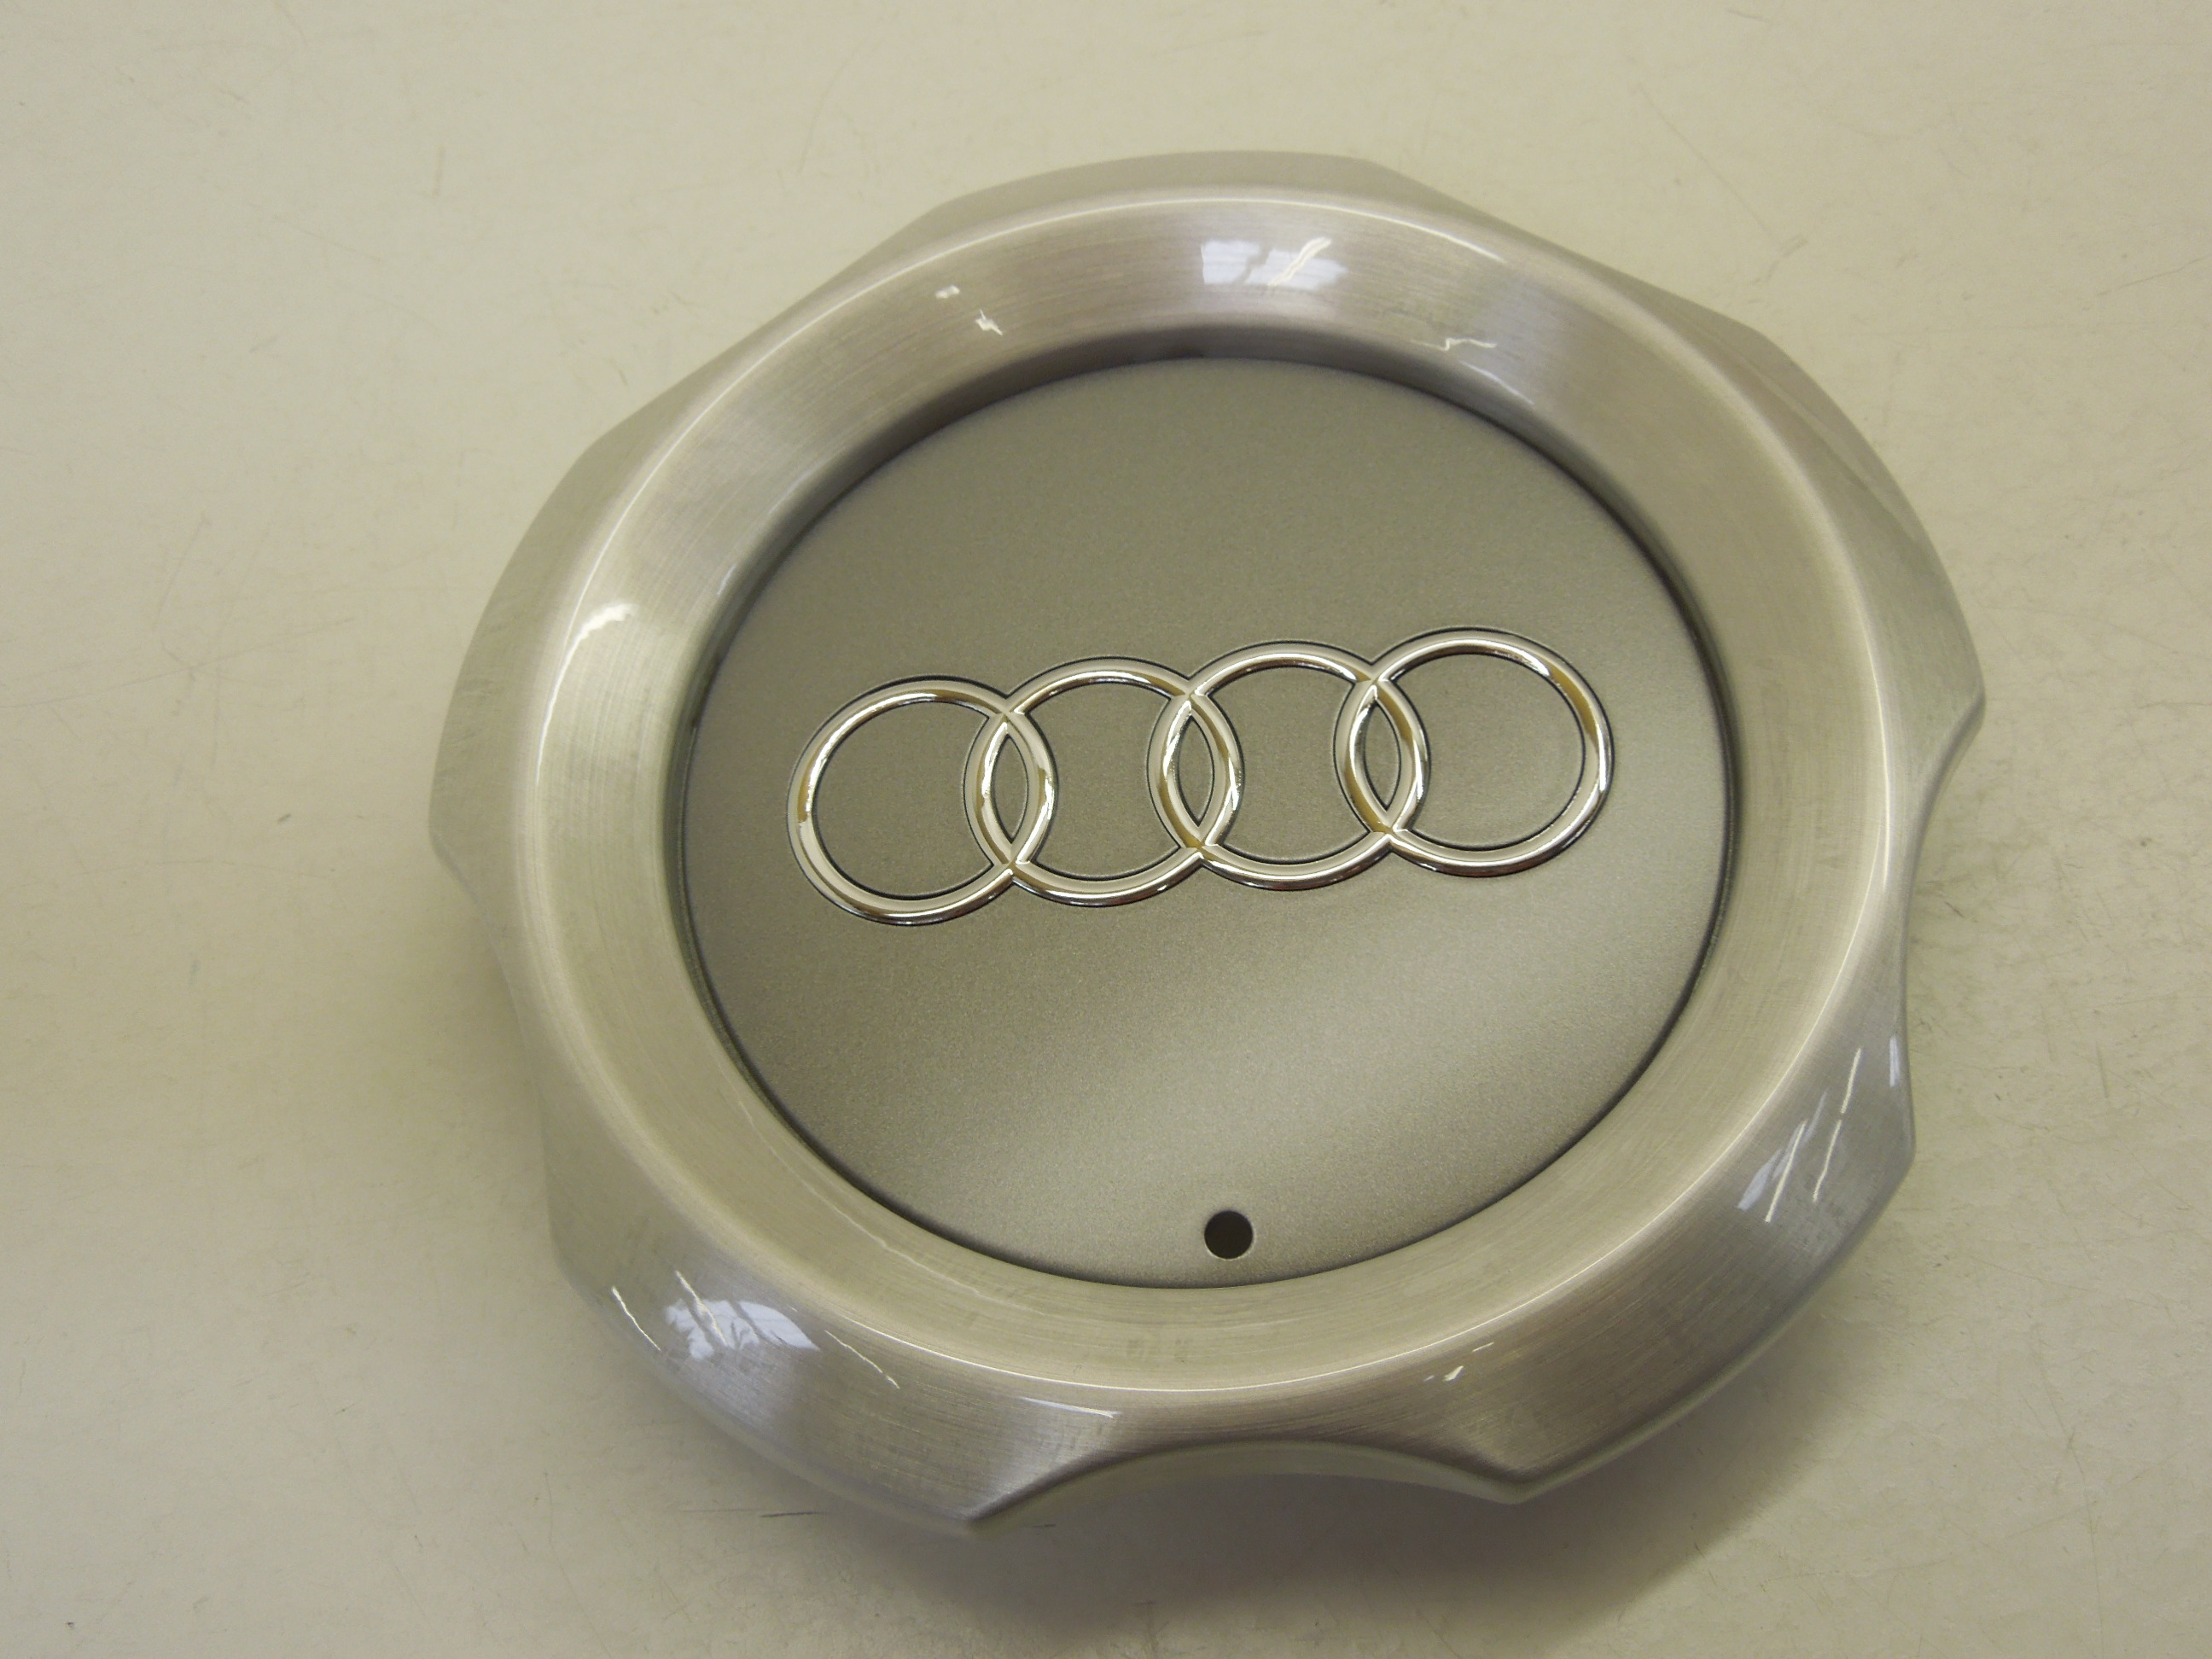 NEW AUDI A6 C5 ALLROAD QUATTRO 00-05 OEM WHEEL CENTRE HUB CAP 1PCS COVER 17/""